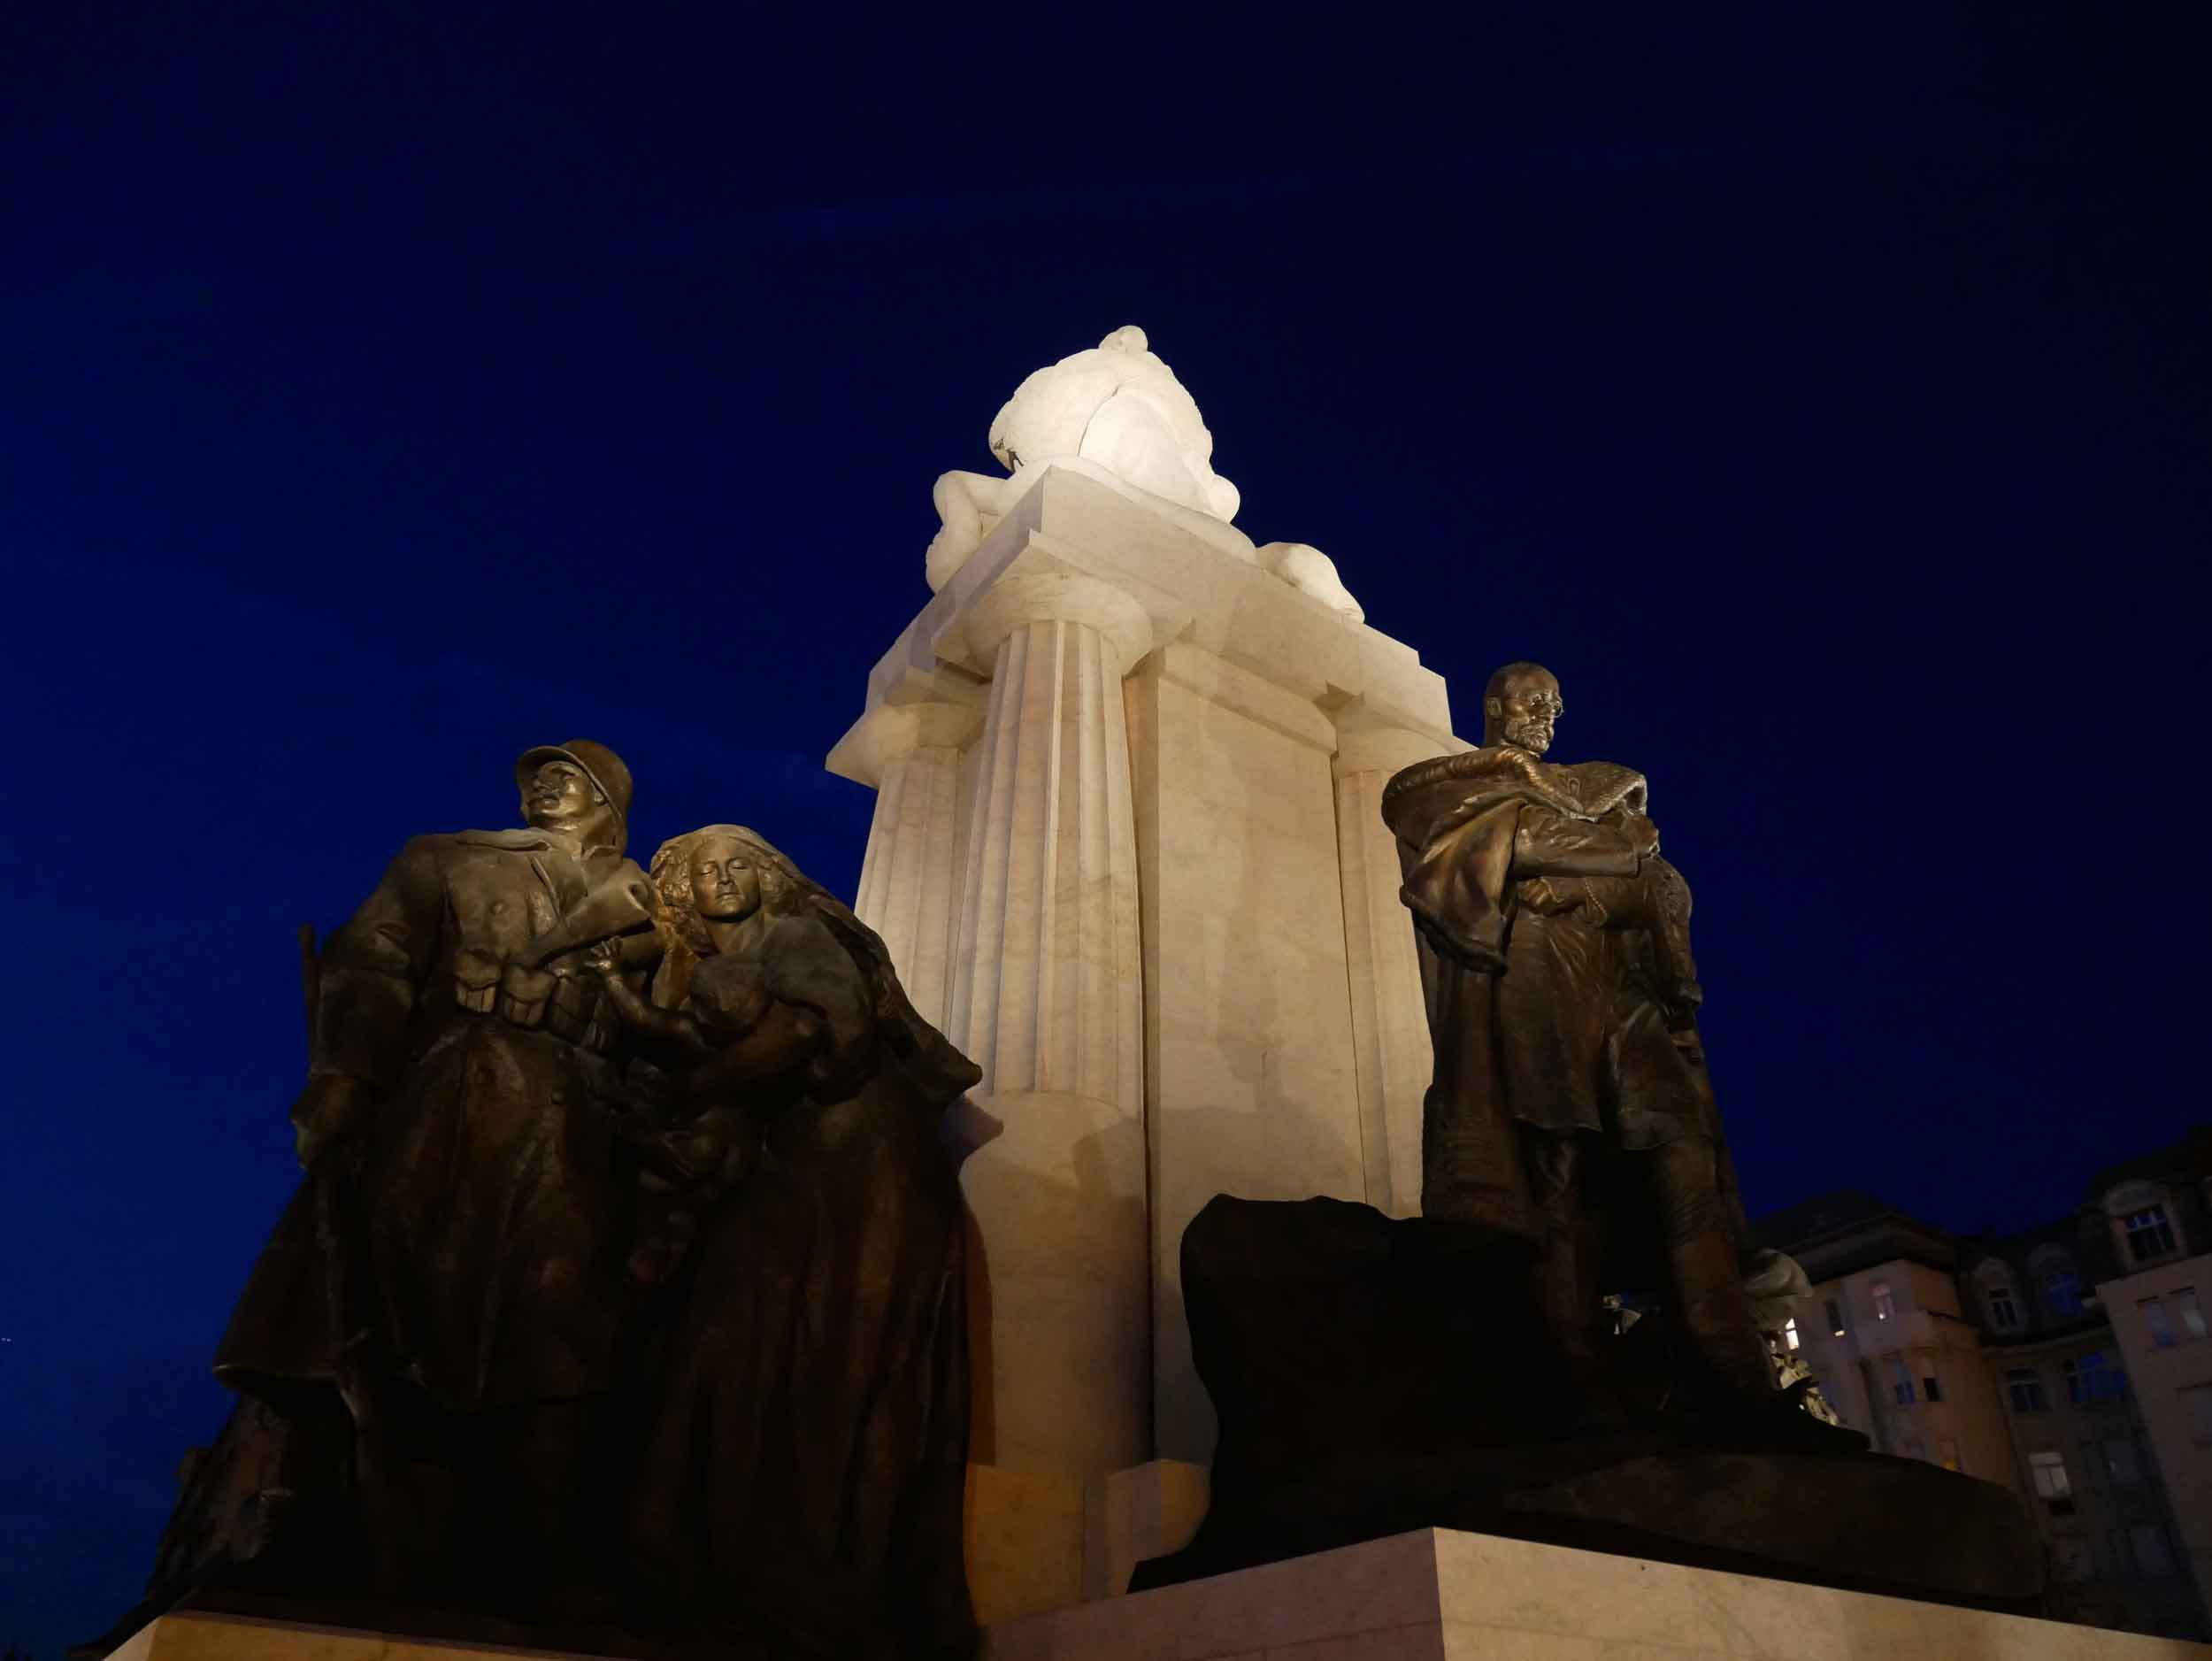 Statues surrounding the extraordinary building represent Hungarian leaders and military figures from the country's history.